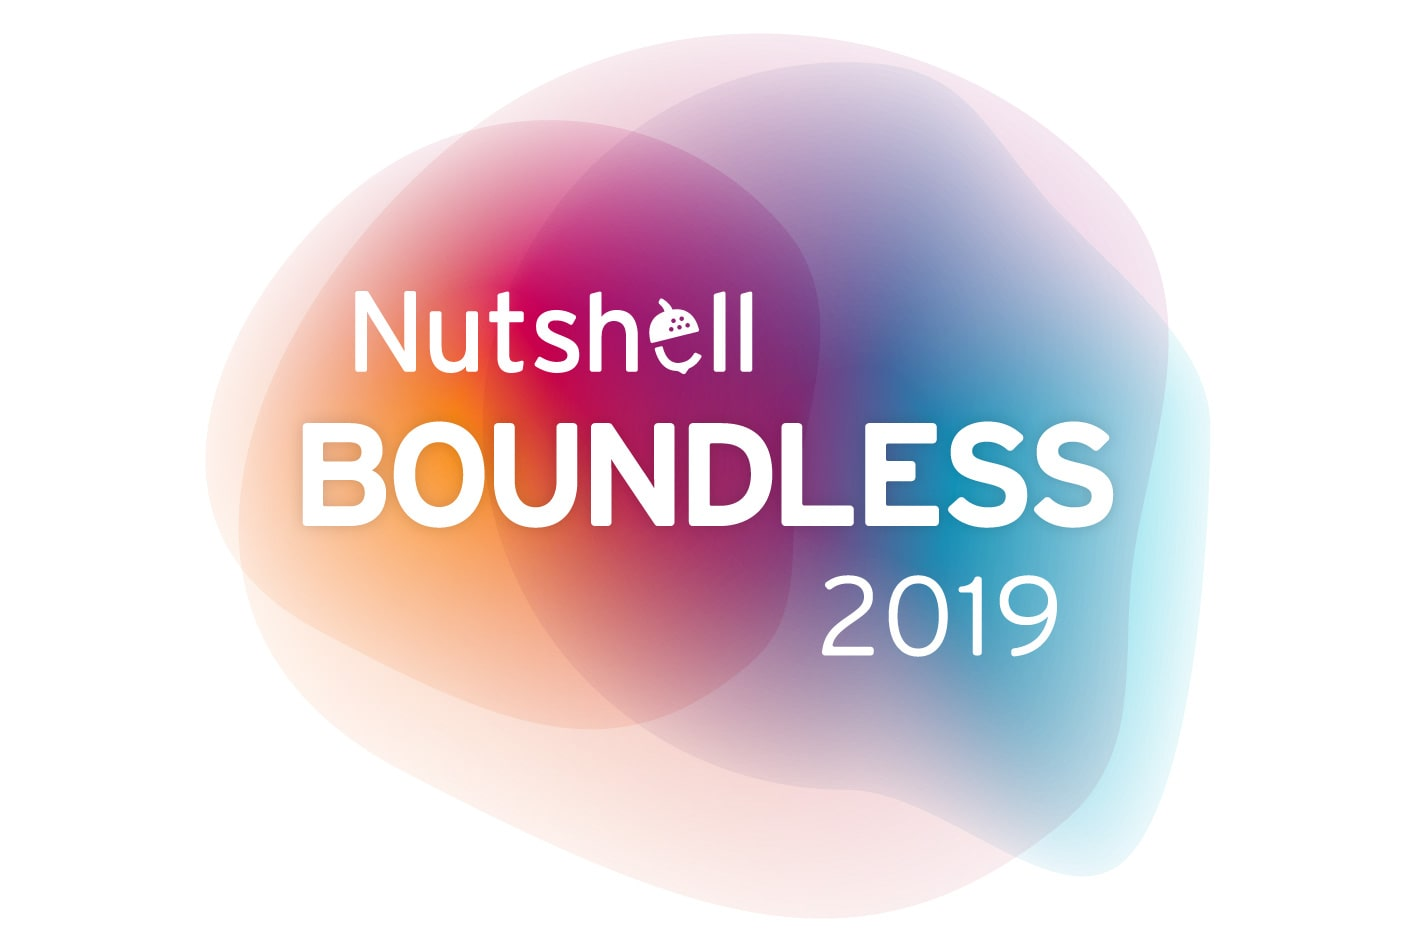 nutshell boundless 2019 sales virtual event